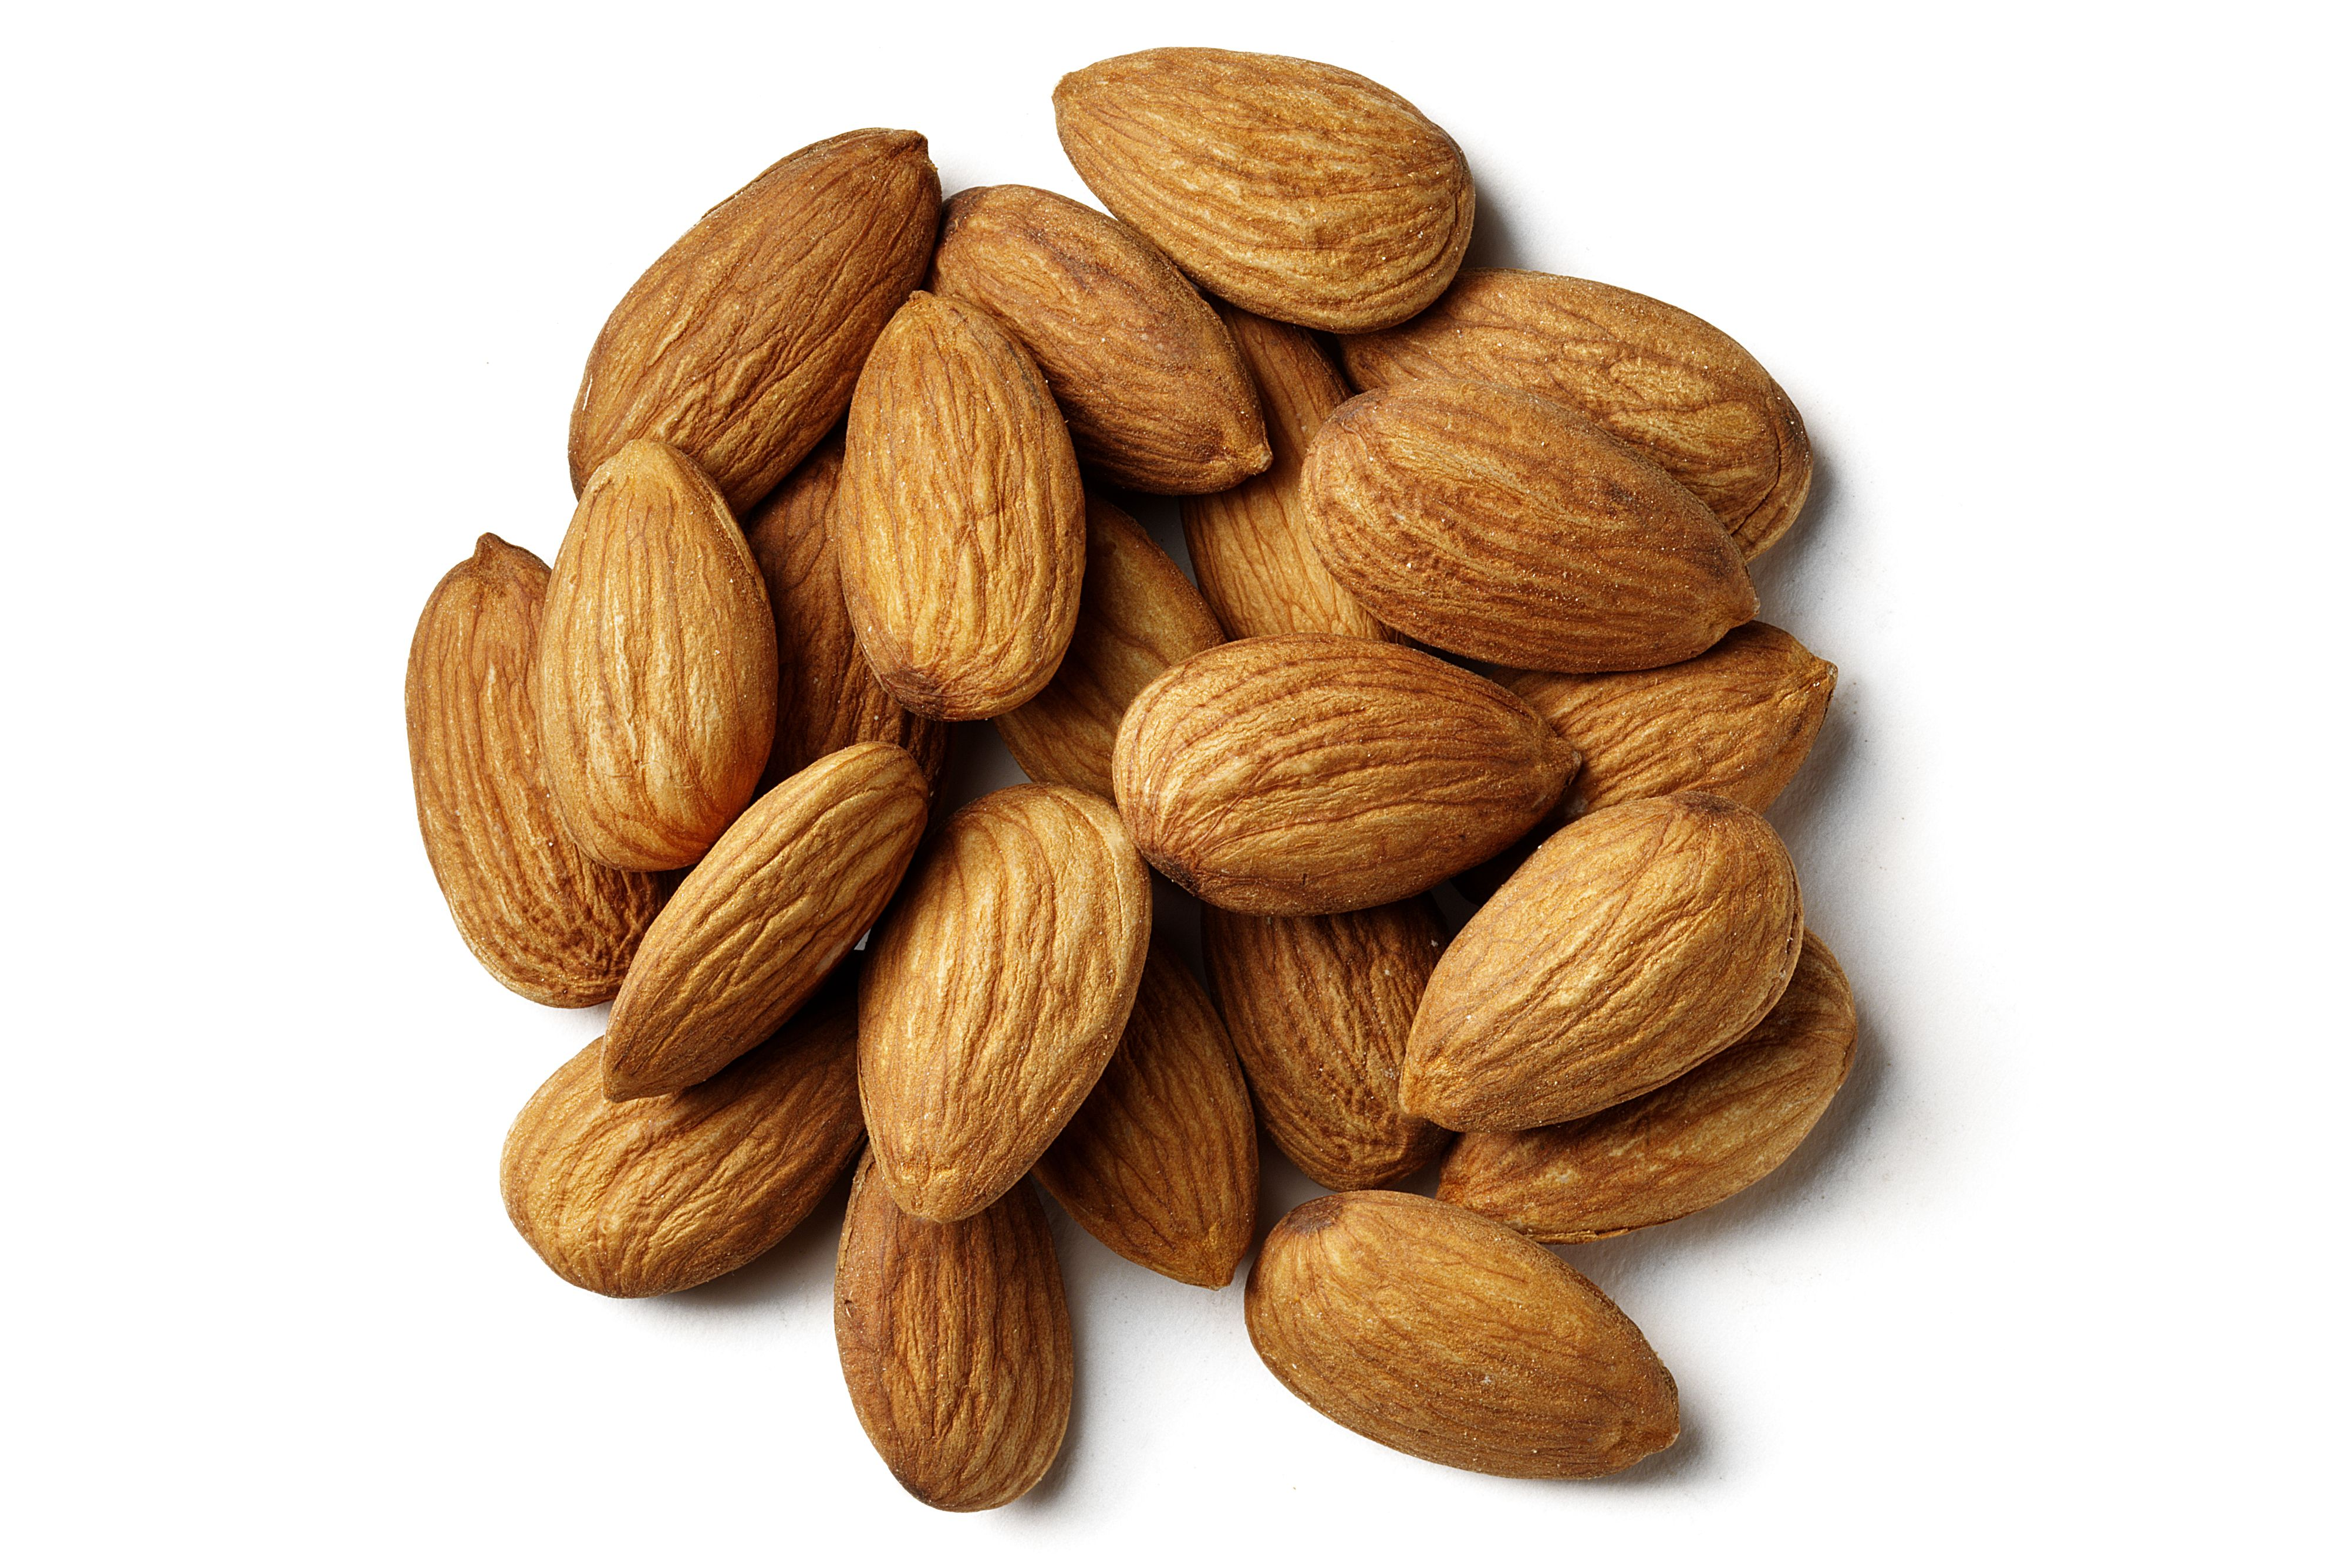 Almond Skin Polyphenols May Help Modulate Plasma Biomarkers of Oxidative Stress